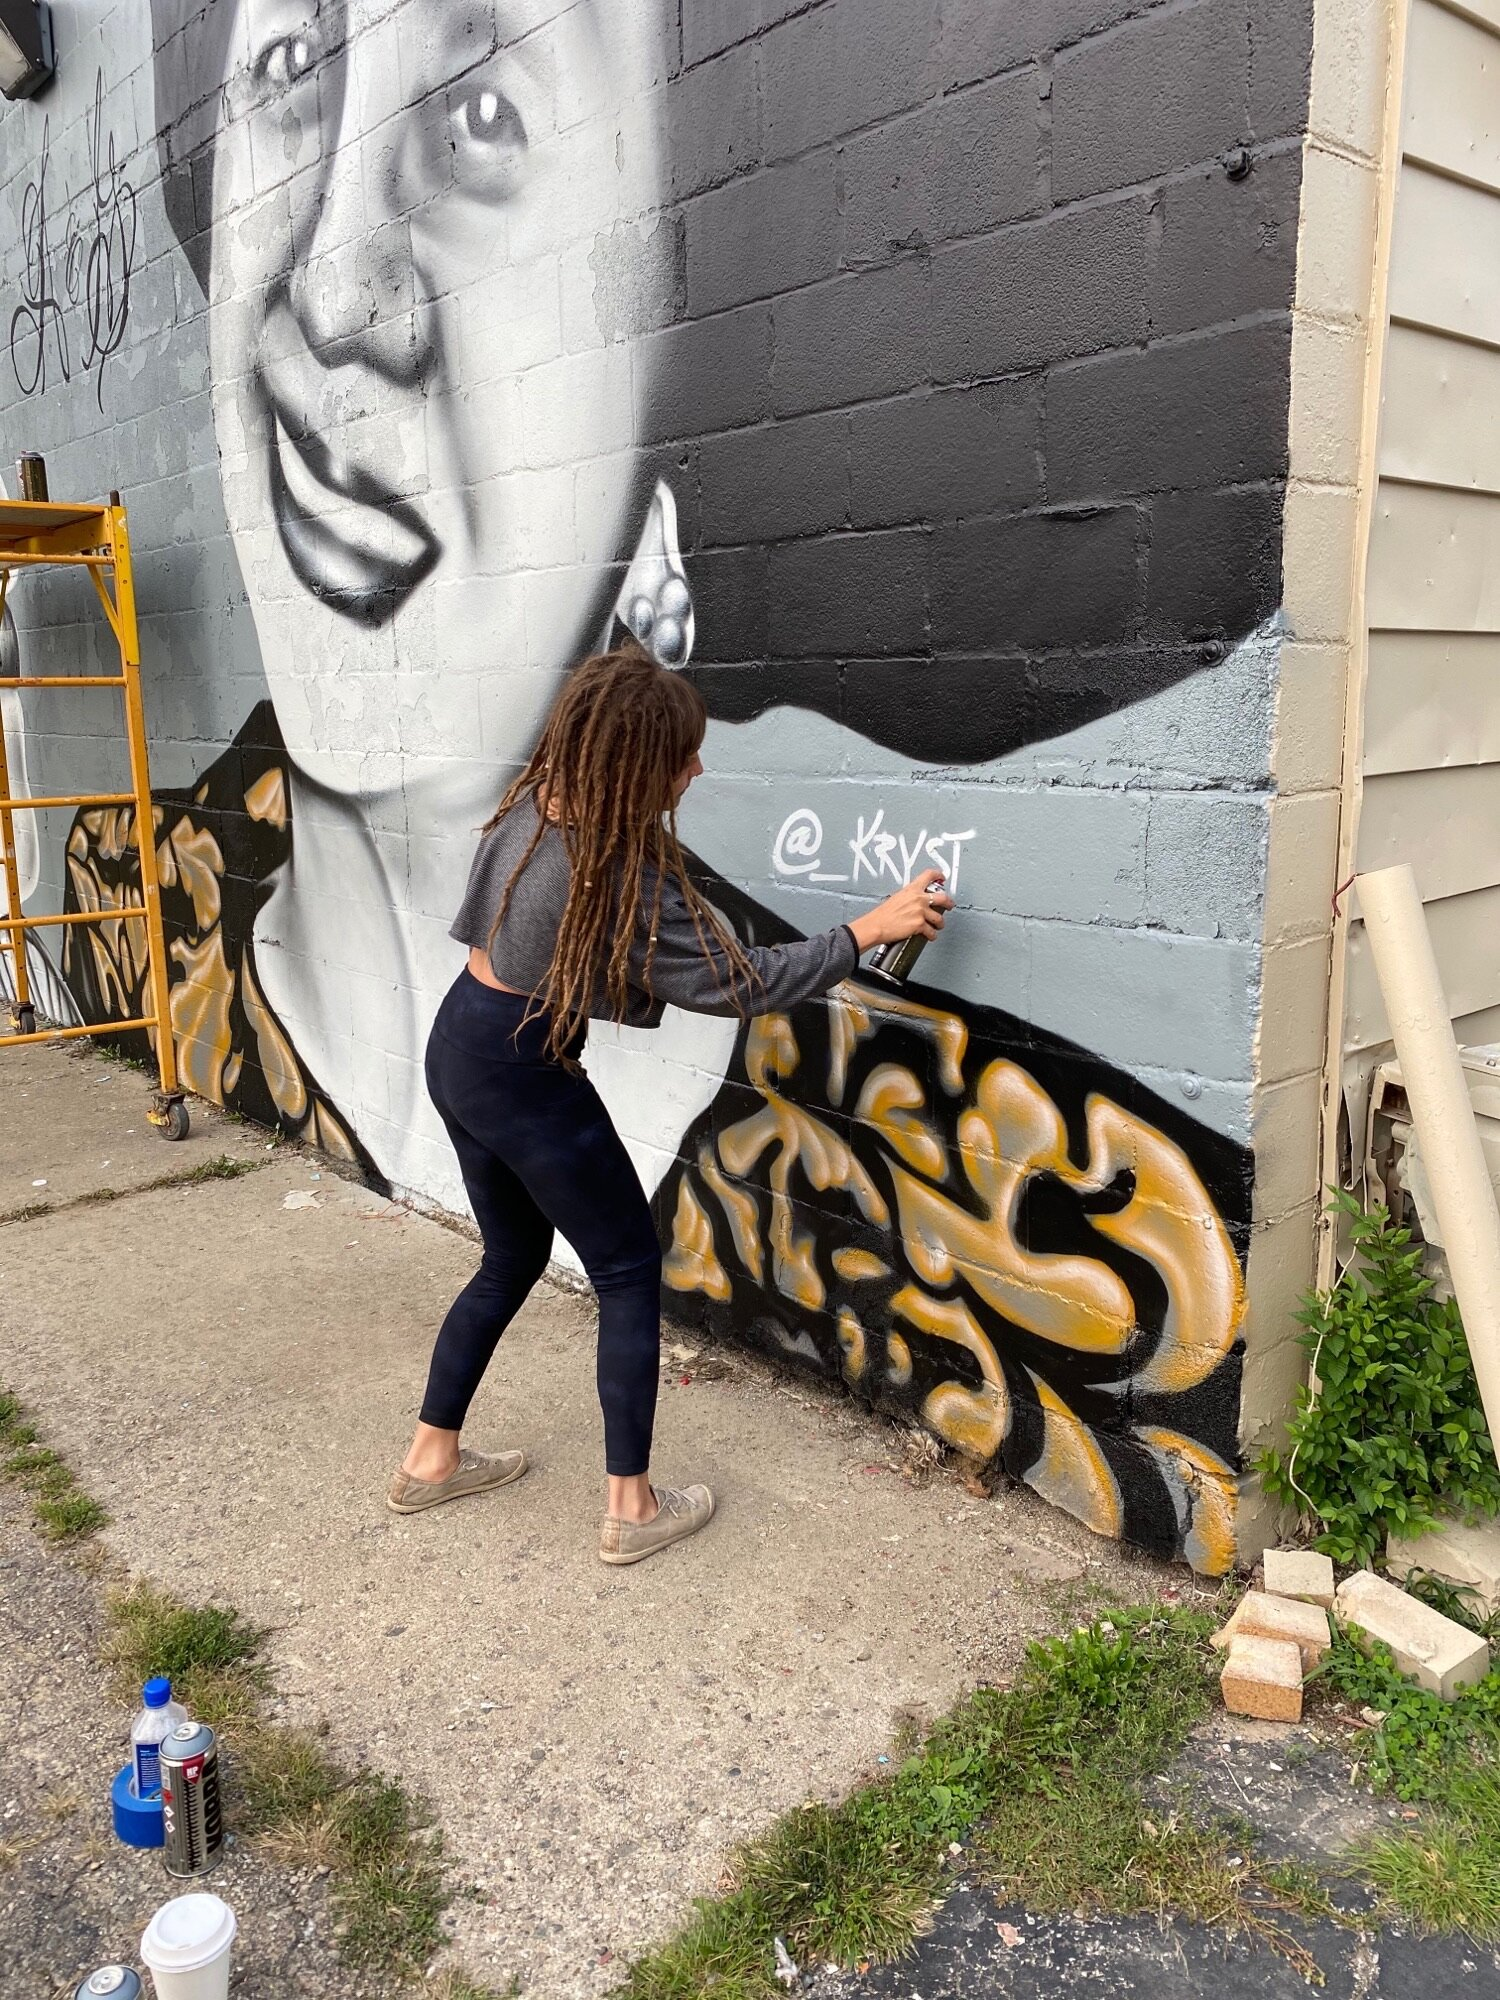 Local artist Krystal Cooke signing her completed mural of Mom and Pops.